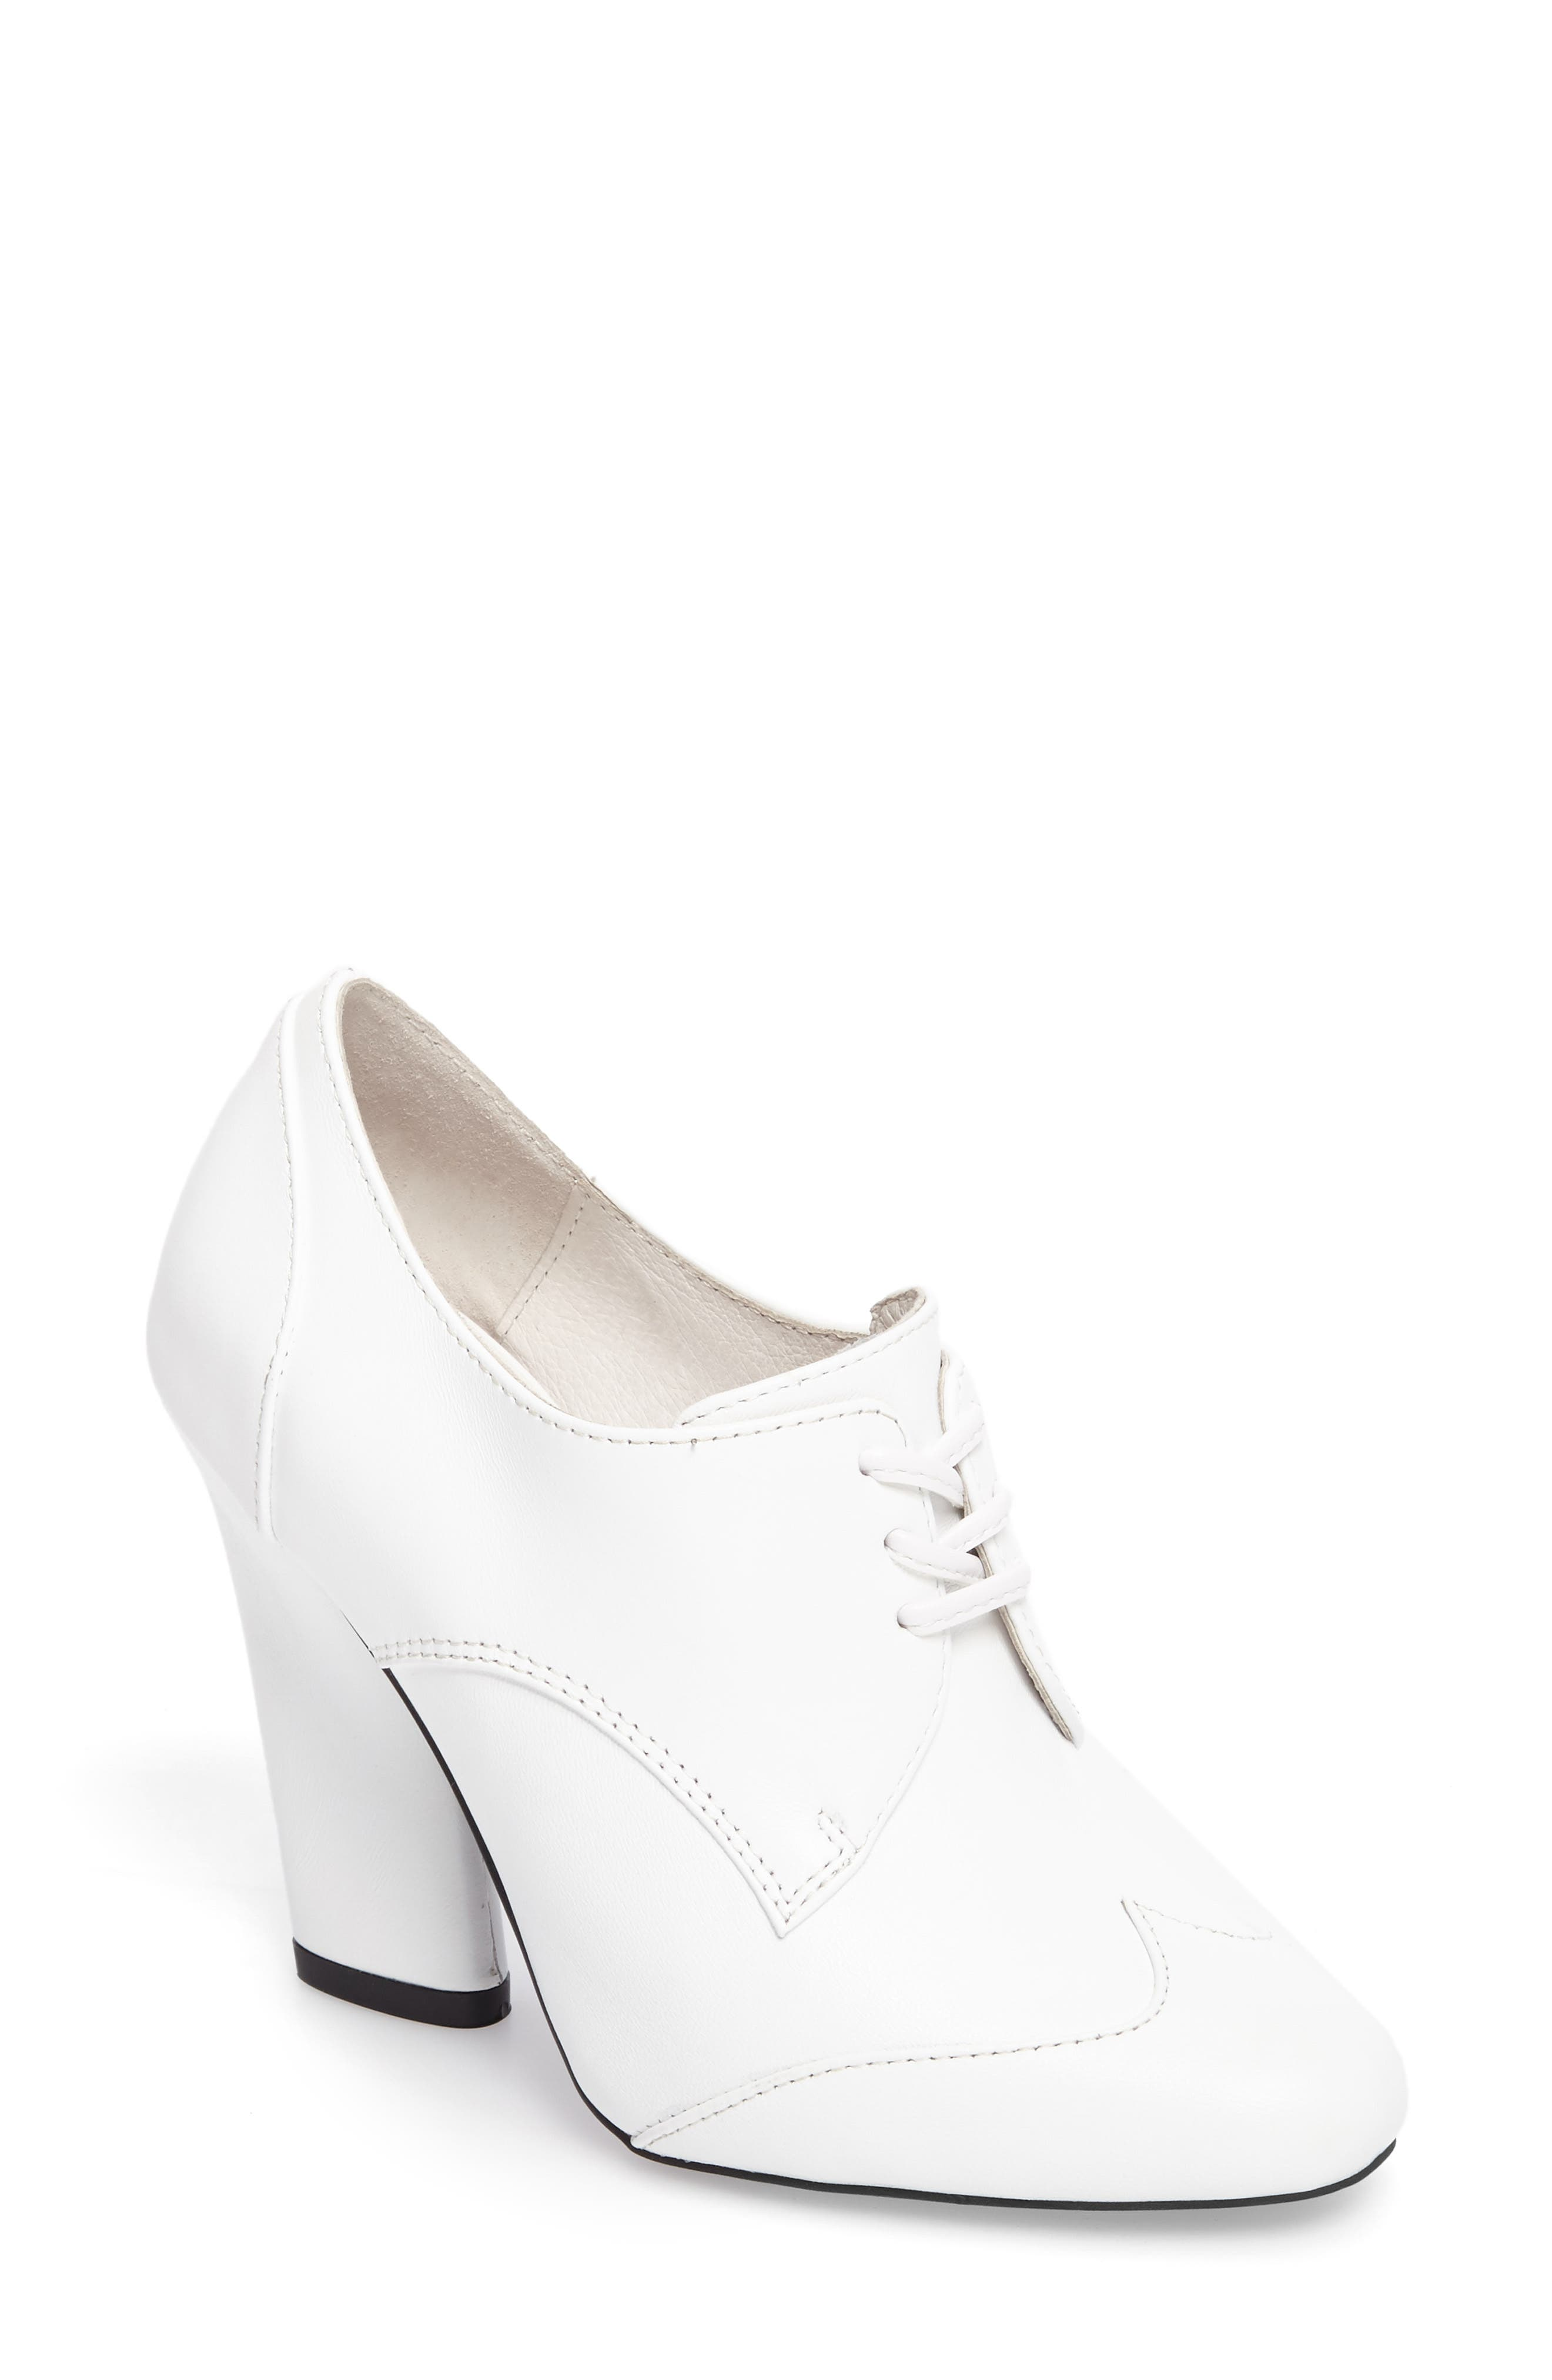 Main Image - Jeffrey Campbell Whitley Oxford Pump